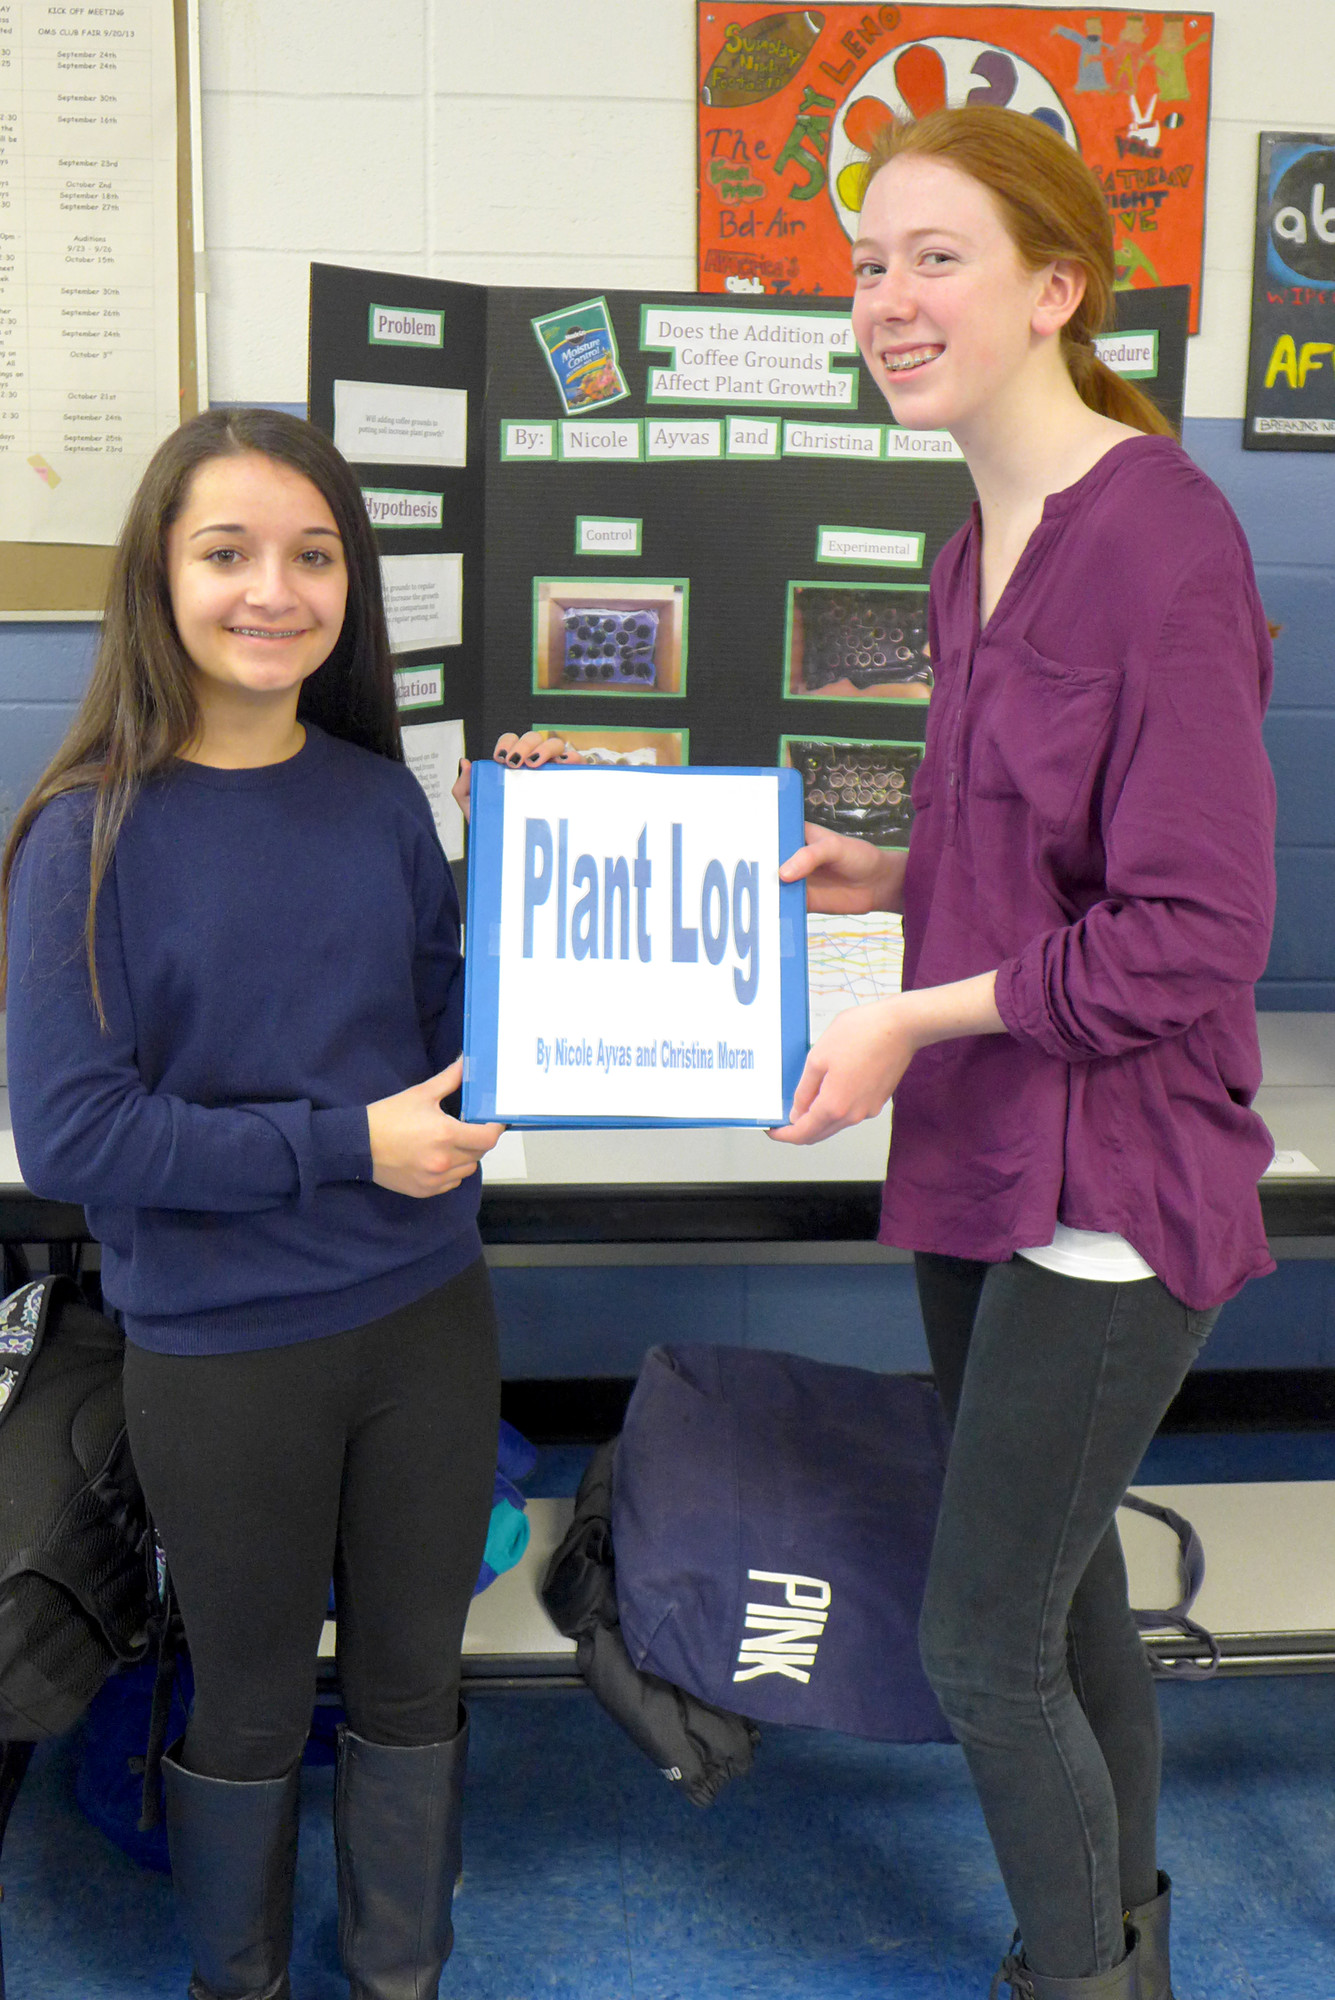 Science Fair winners Nicole Ayvas and Christina Moran experimented on plants and coffee.